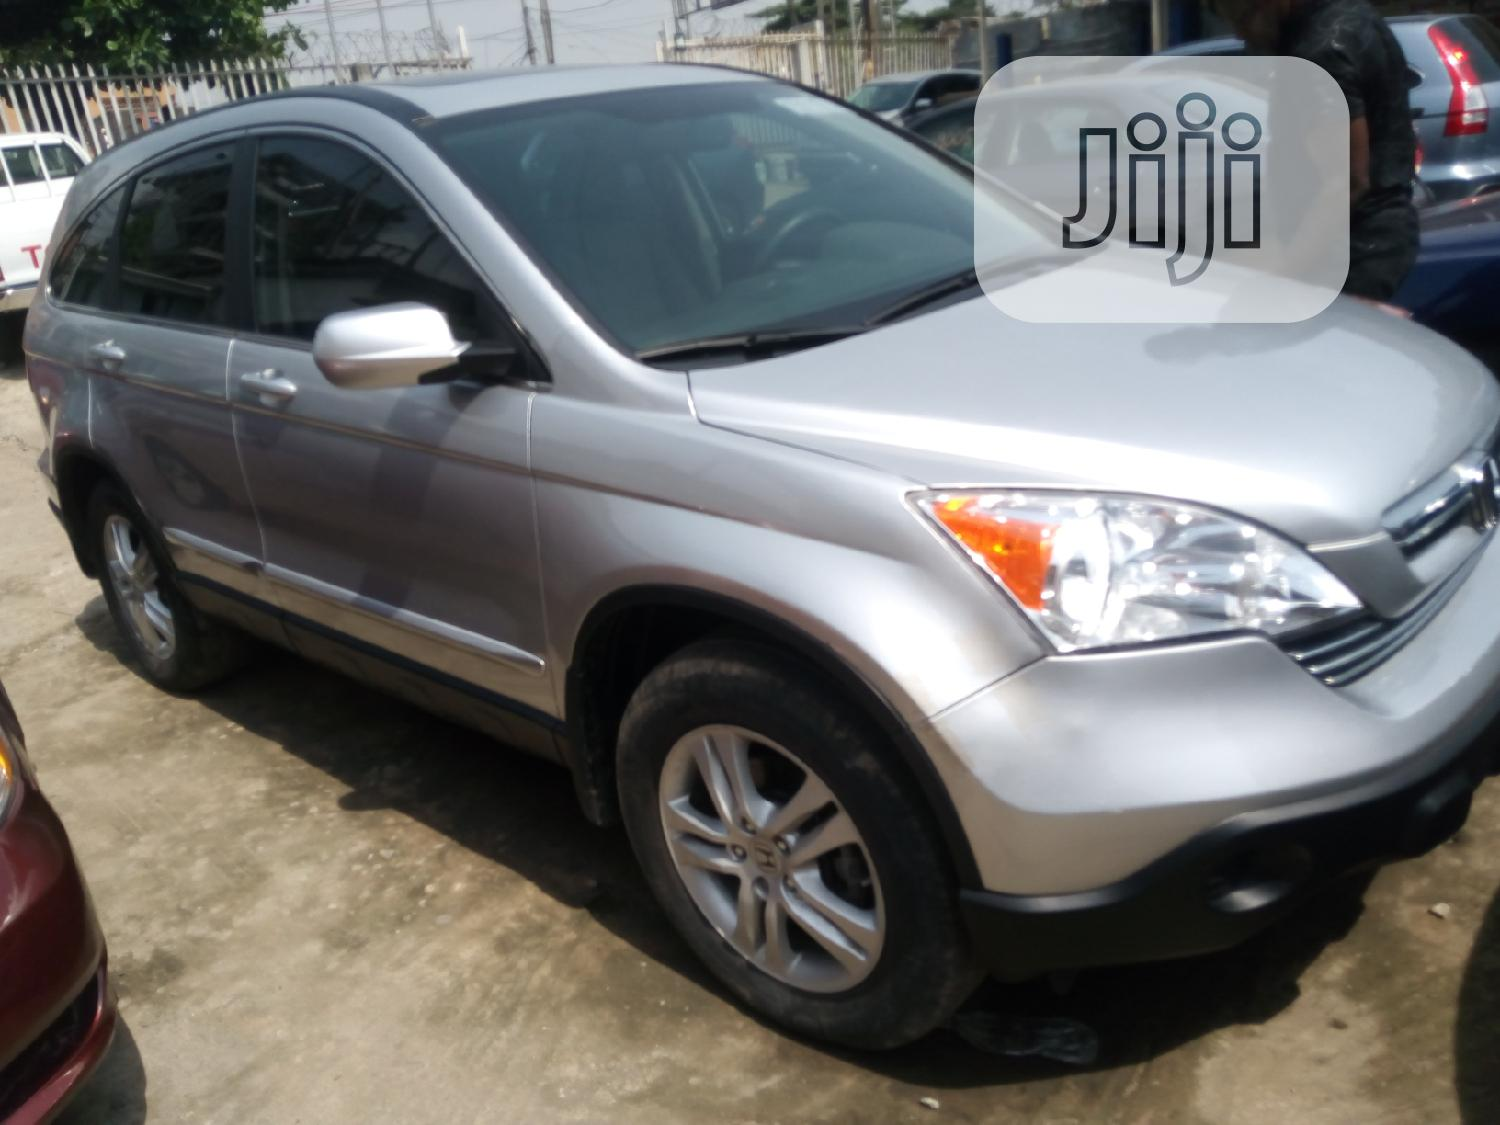 Honda CR-V 2012 LX 4dr SUV (2.4L 4cyl 5A) Silver   Cars for sale in Ikeja, Lagos State, Nigeria